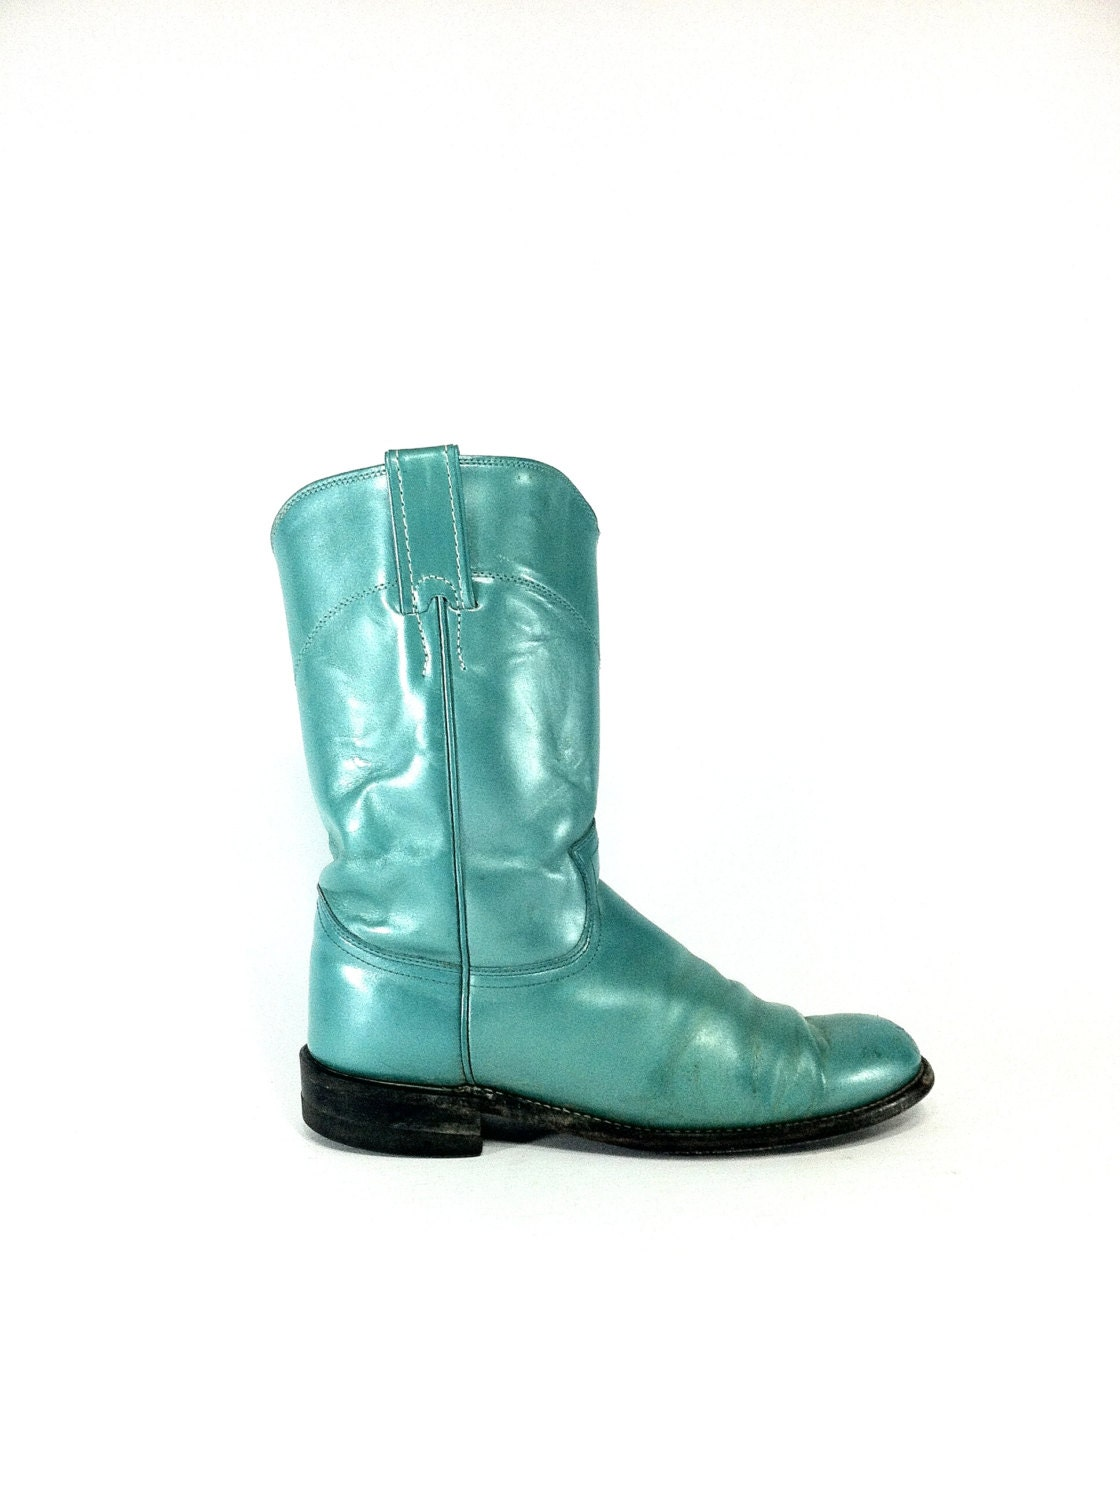 turquoise leather justin roper boots 7 by melissajoyvintage